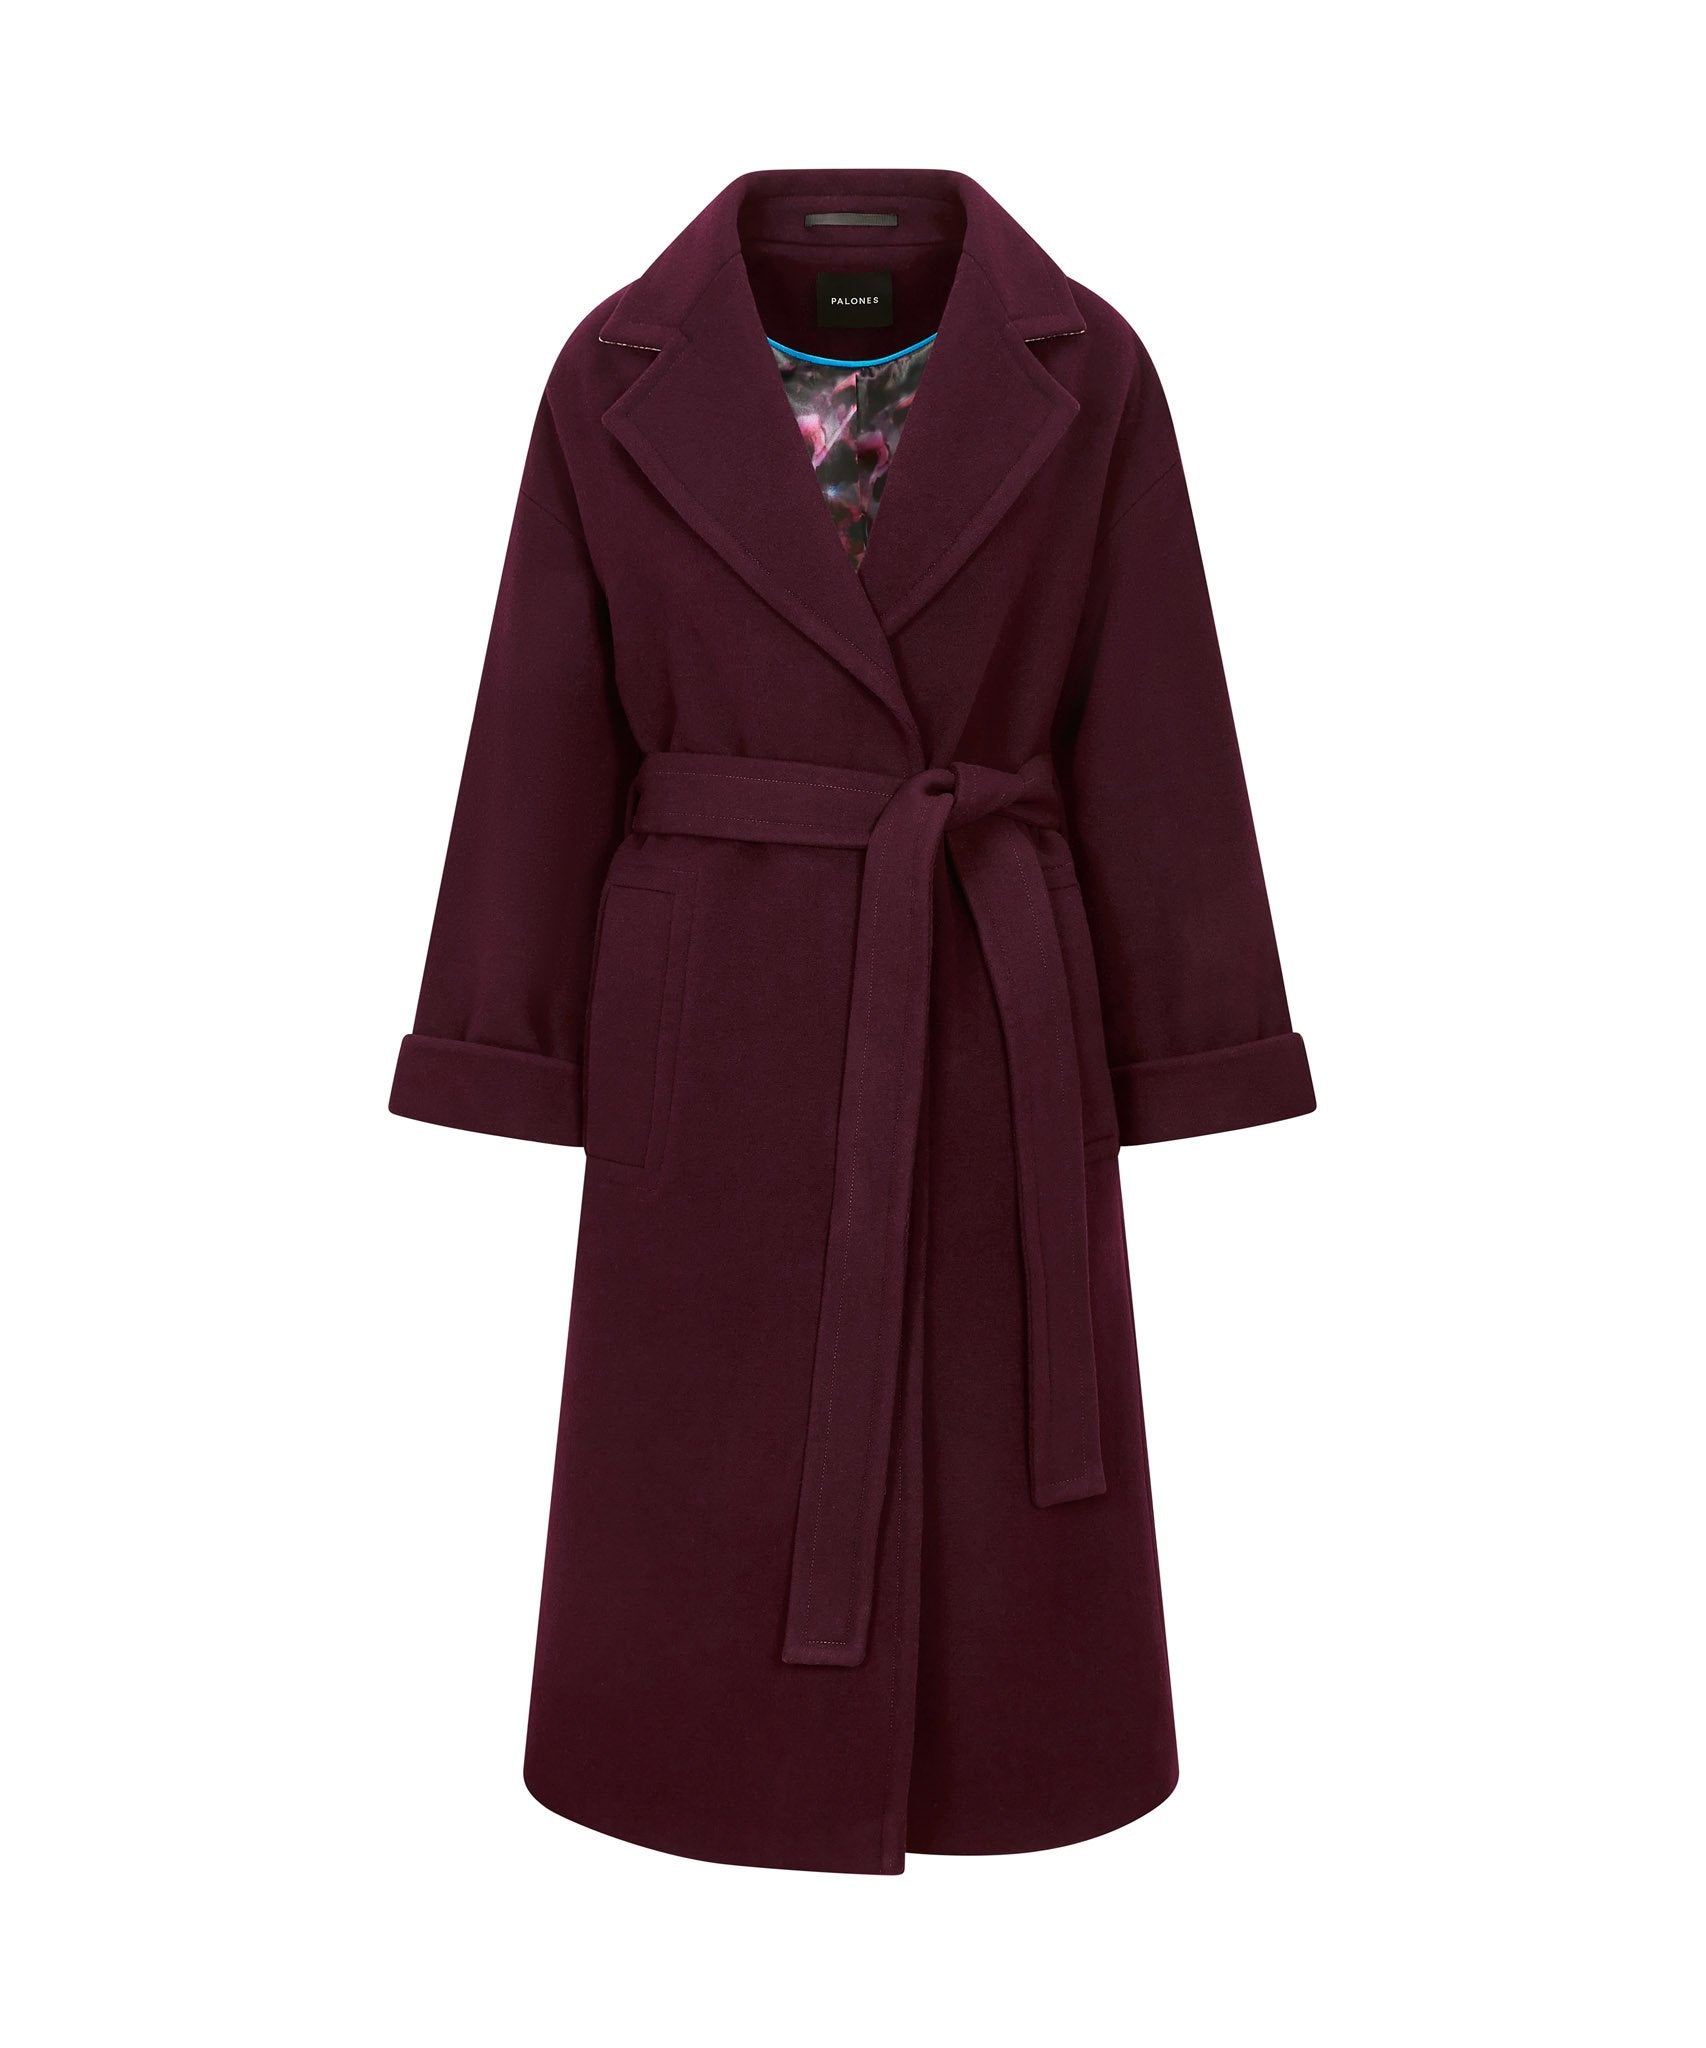 Load image into Gallery viewer, Palones Topstitch Belted Robe Coat Wine